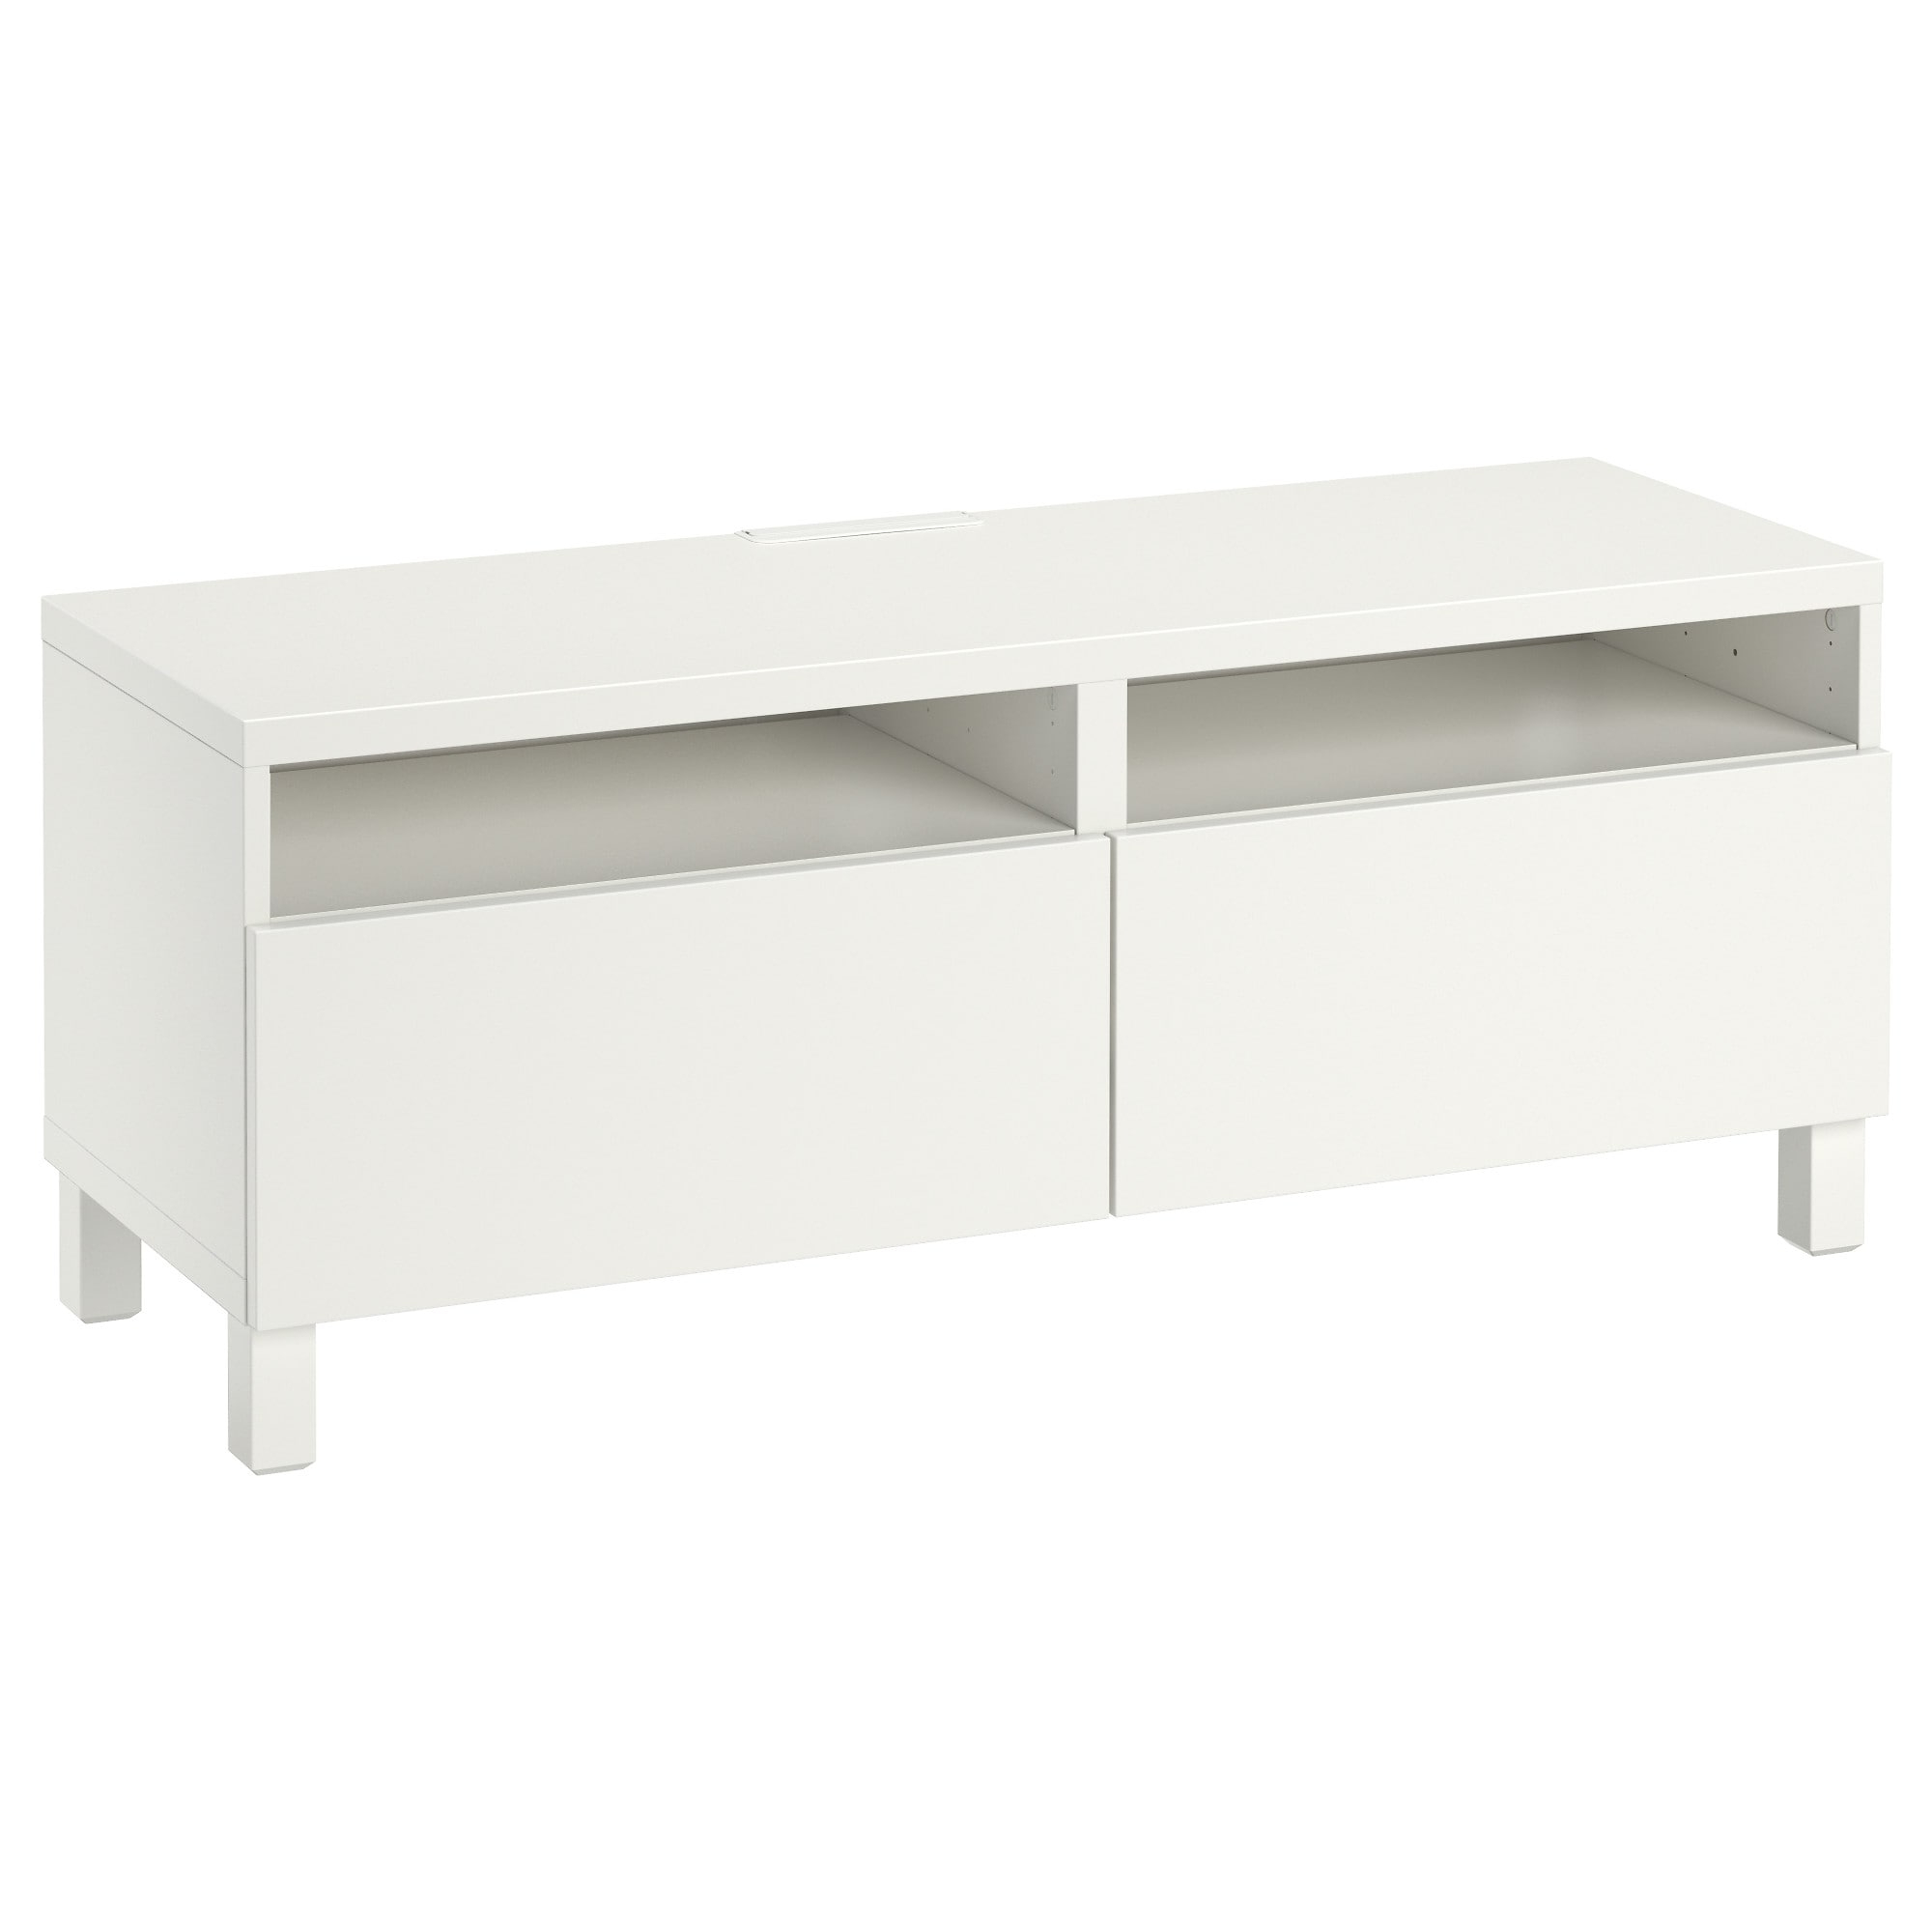 Current Small White Tv Cabinets Throughout Bestå Tv Unit With Drawers – Lappviken White, Drawer Runner, Push (View 1 of 20)